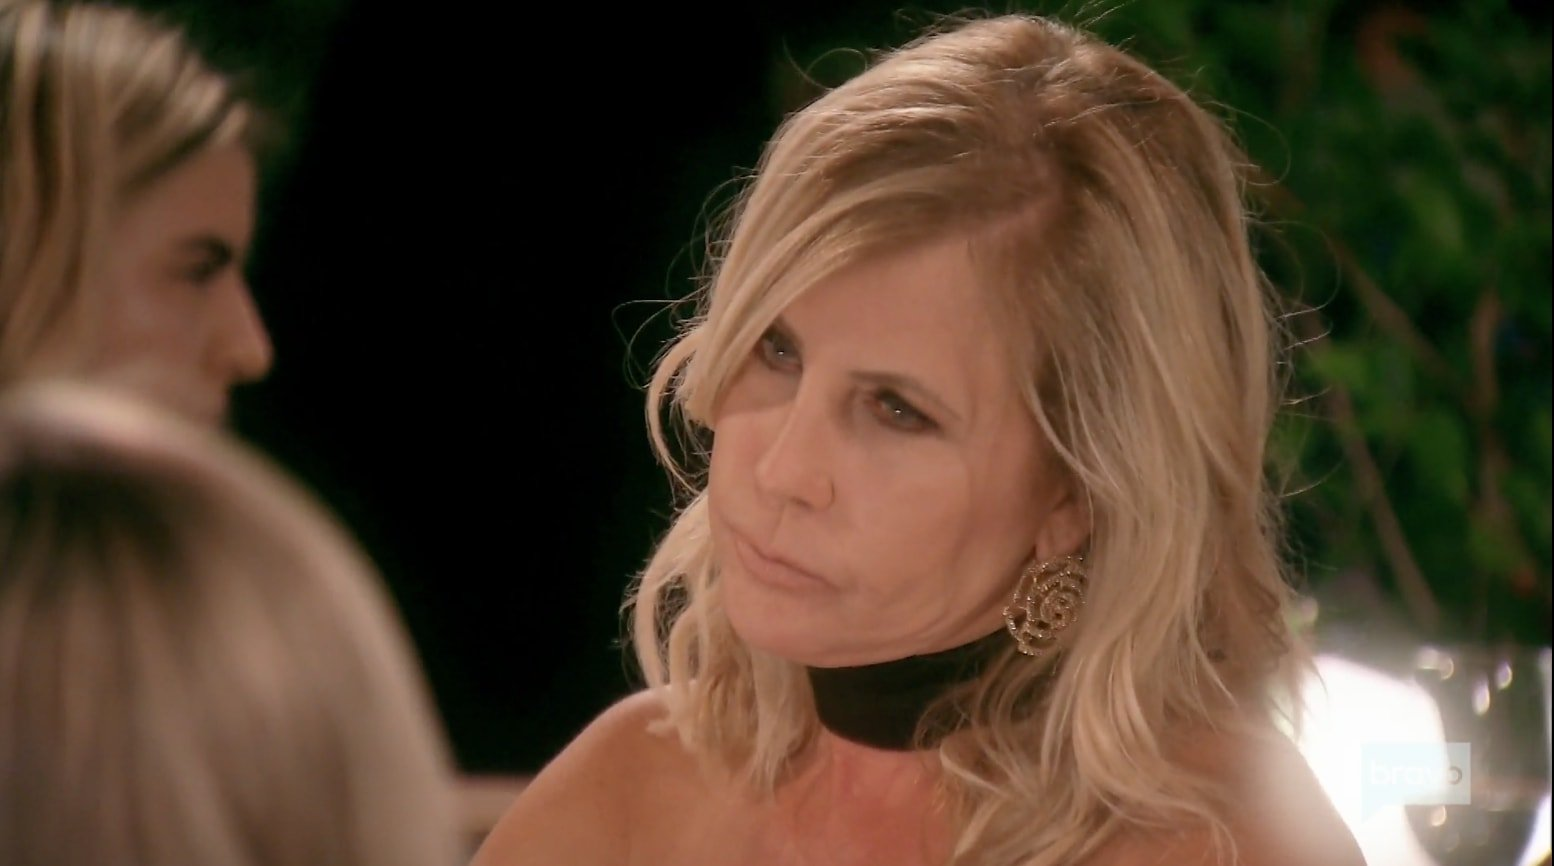 Vicki GUnvalson is called out for breaking Girl Code